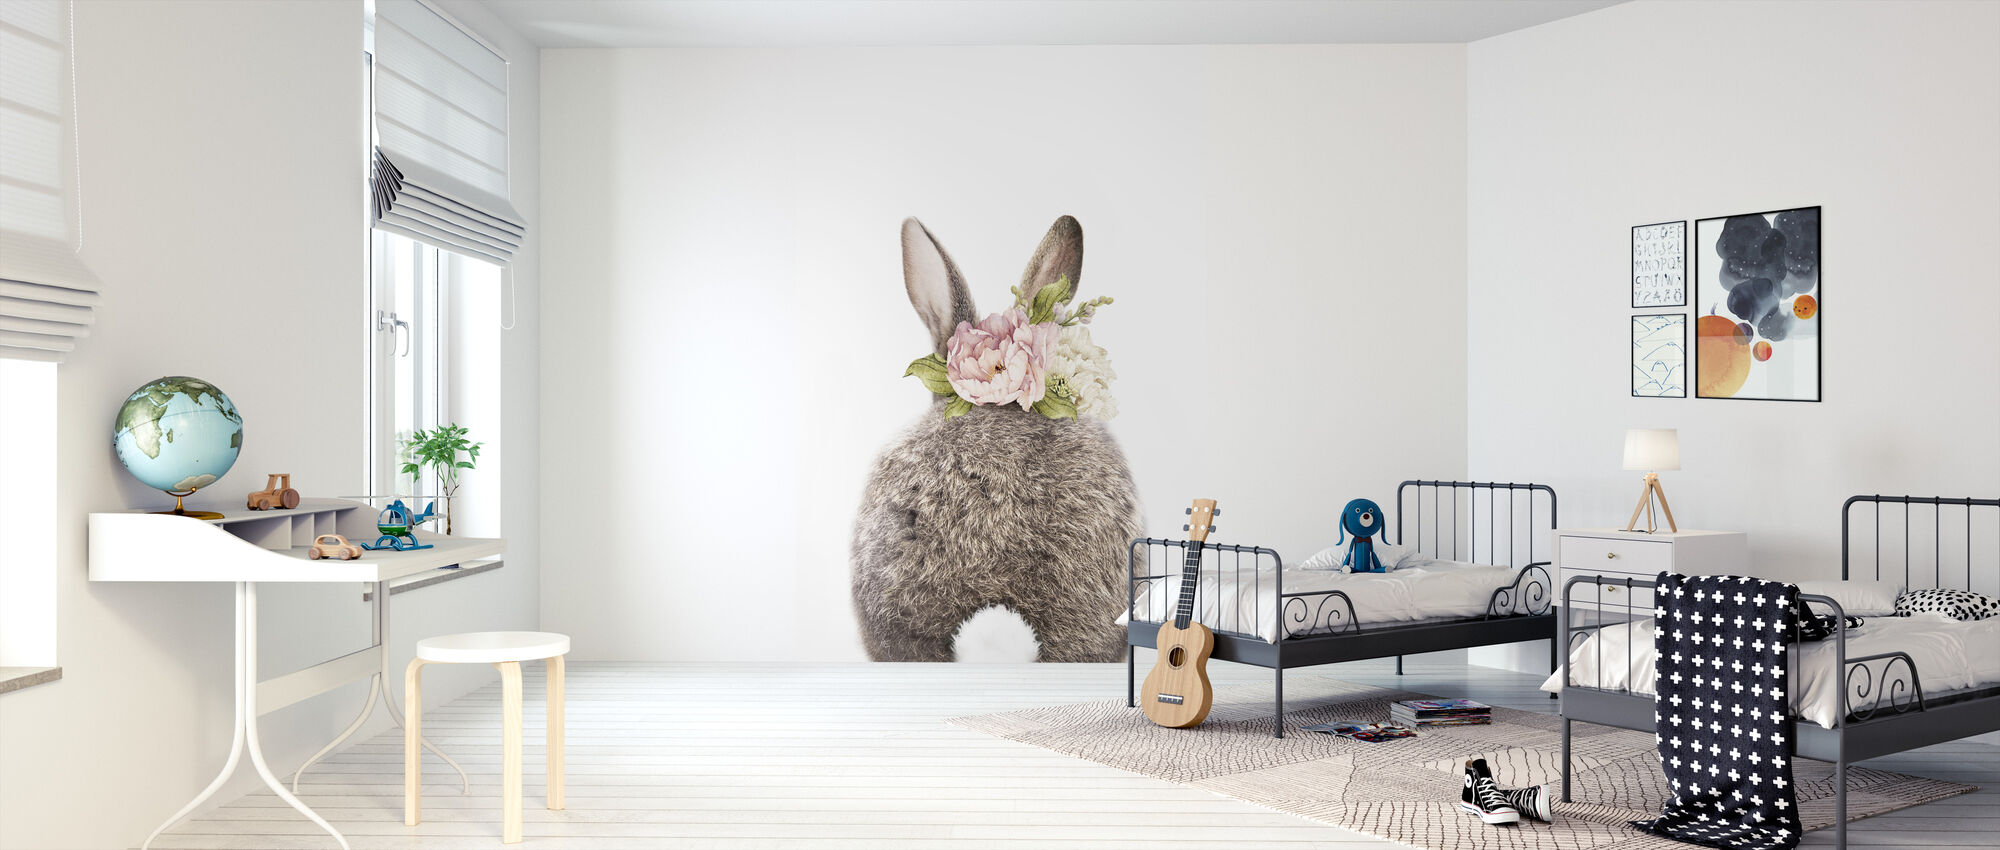 Floral Bunny - Tail - Wallpaper - Kids Room